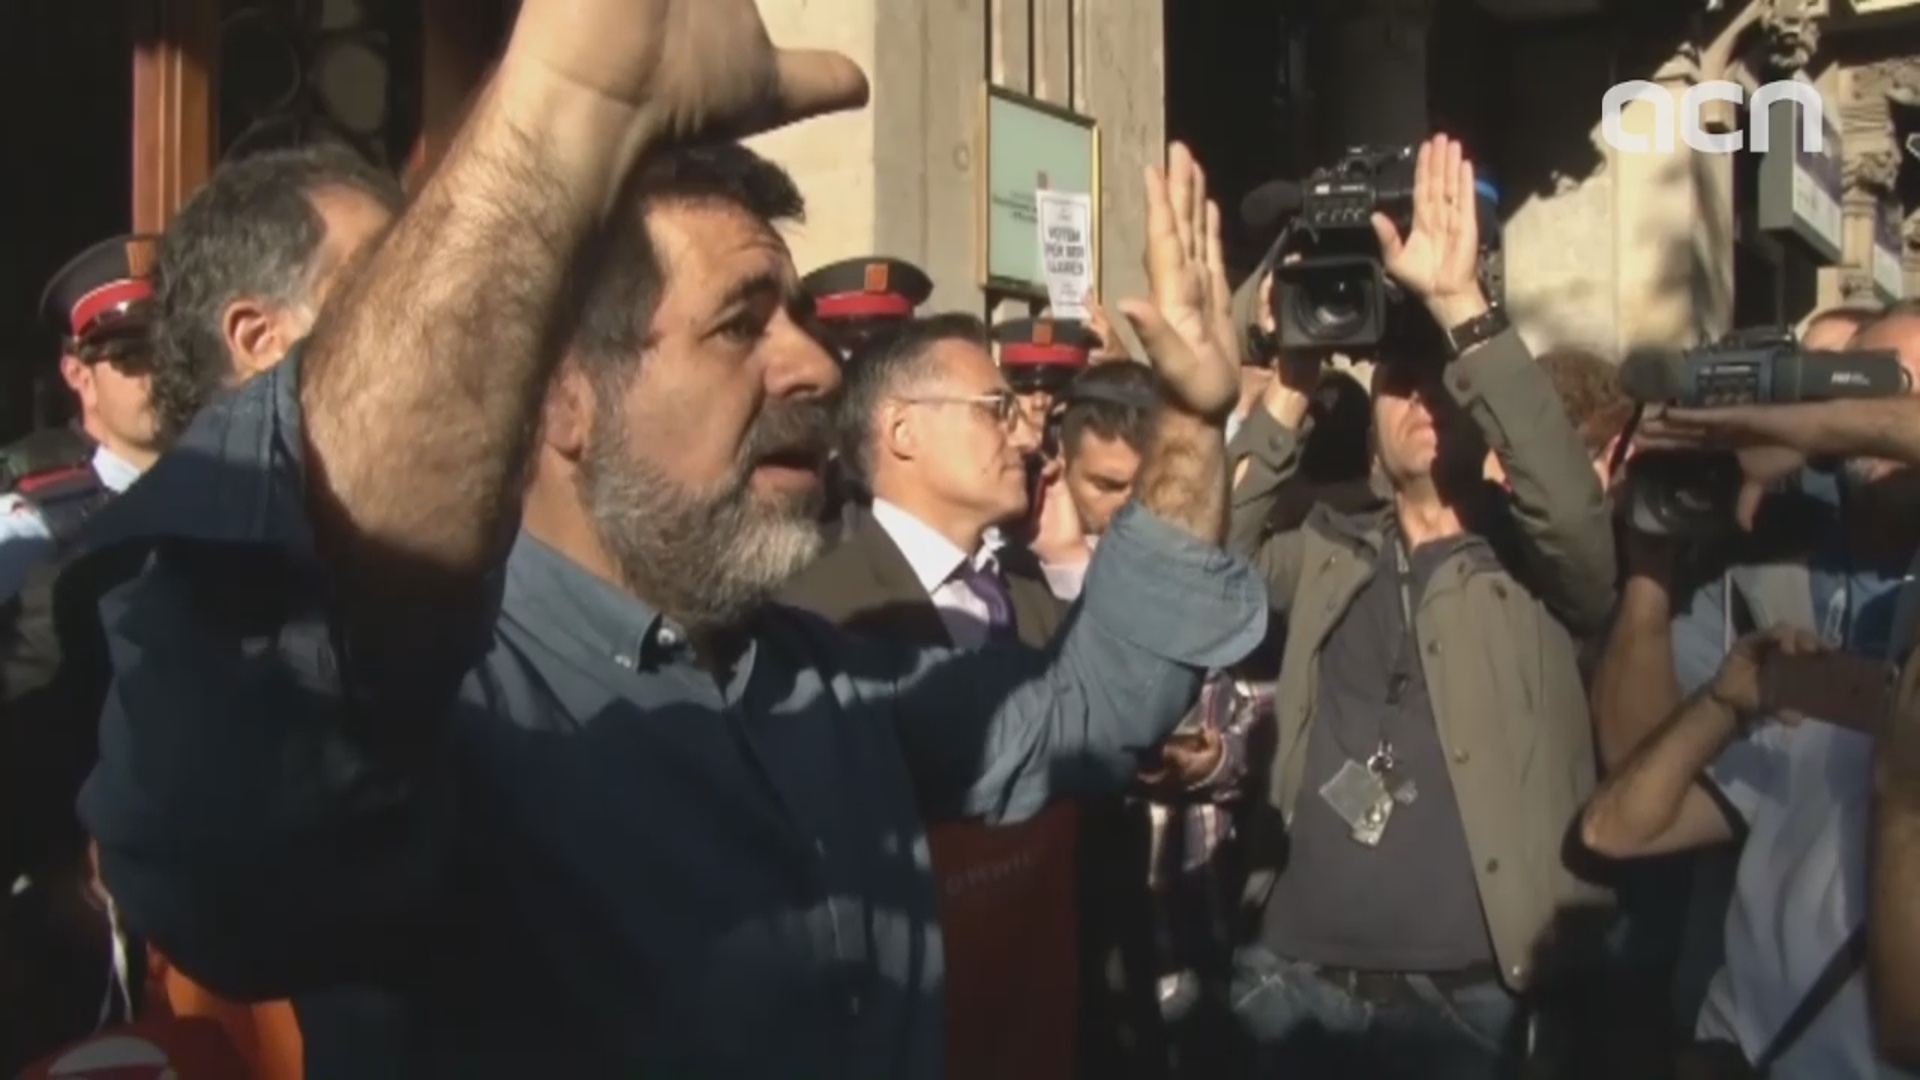 Civil society leader Jordi Sánchez demands to be released